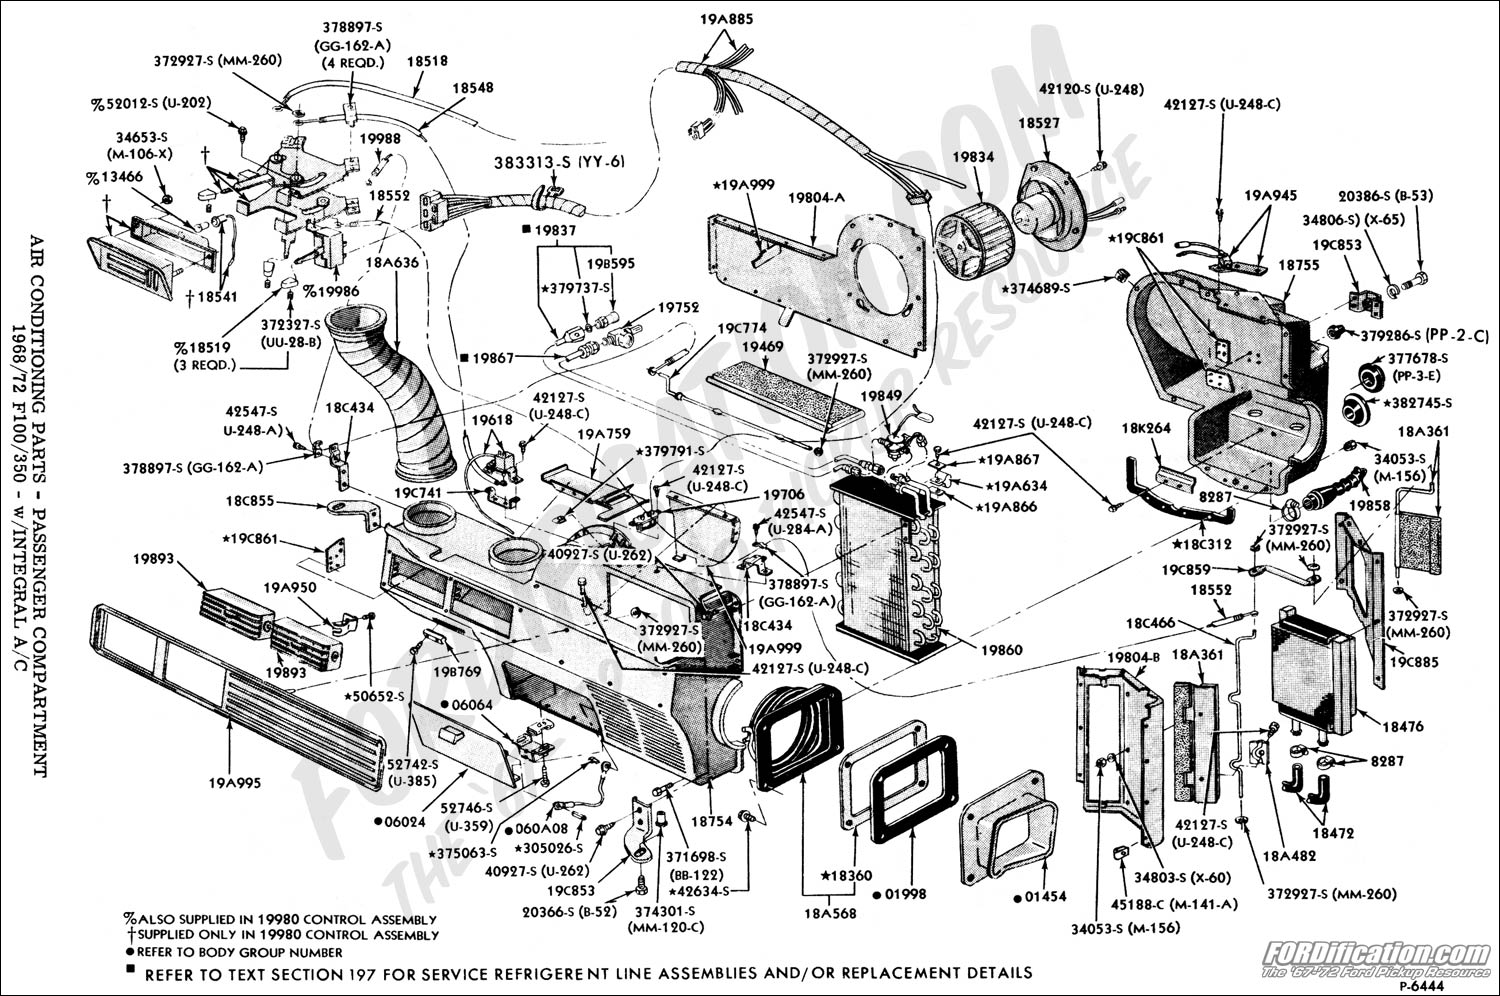 T11601441 Heater hose diagram 1998 ford windstar besides Schematics f further Honda 300 Fourtrax Wiring Diagram furthermore 2008 Ford Taurus Location Of Fuse Box 2008 Ford Taurus Fuse Box Within 1998 Ford Taurus Fuse Box Diagram additionally 2002. on mercury grand marquis engine diagram